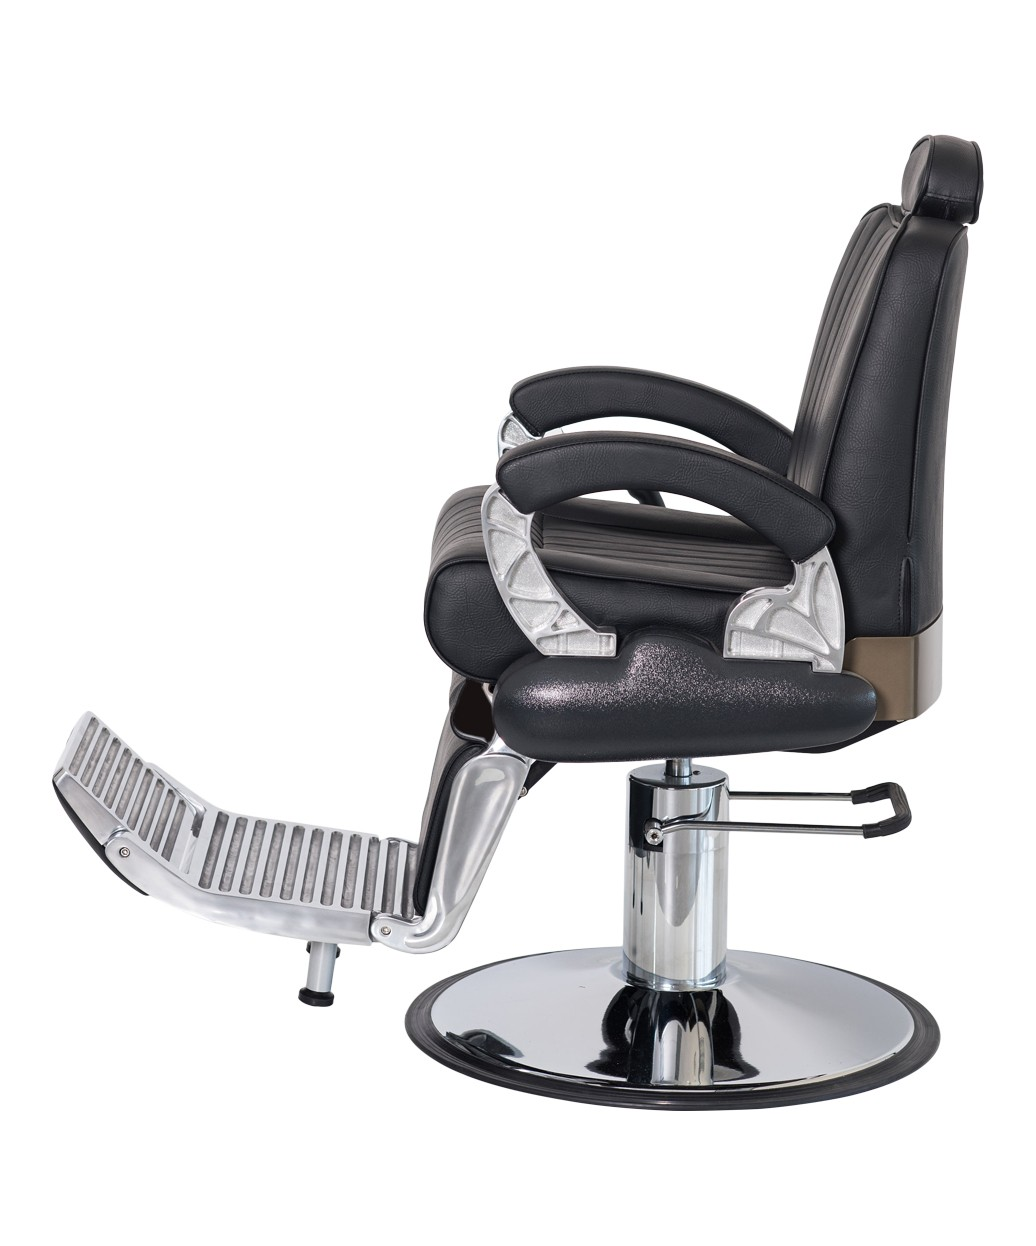 sc 1 st  Buy-Rite Beauty & Apollo Professional Barber Chair